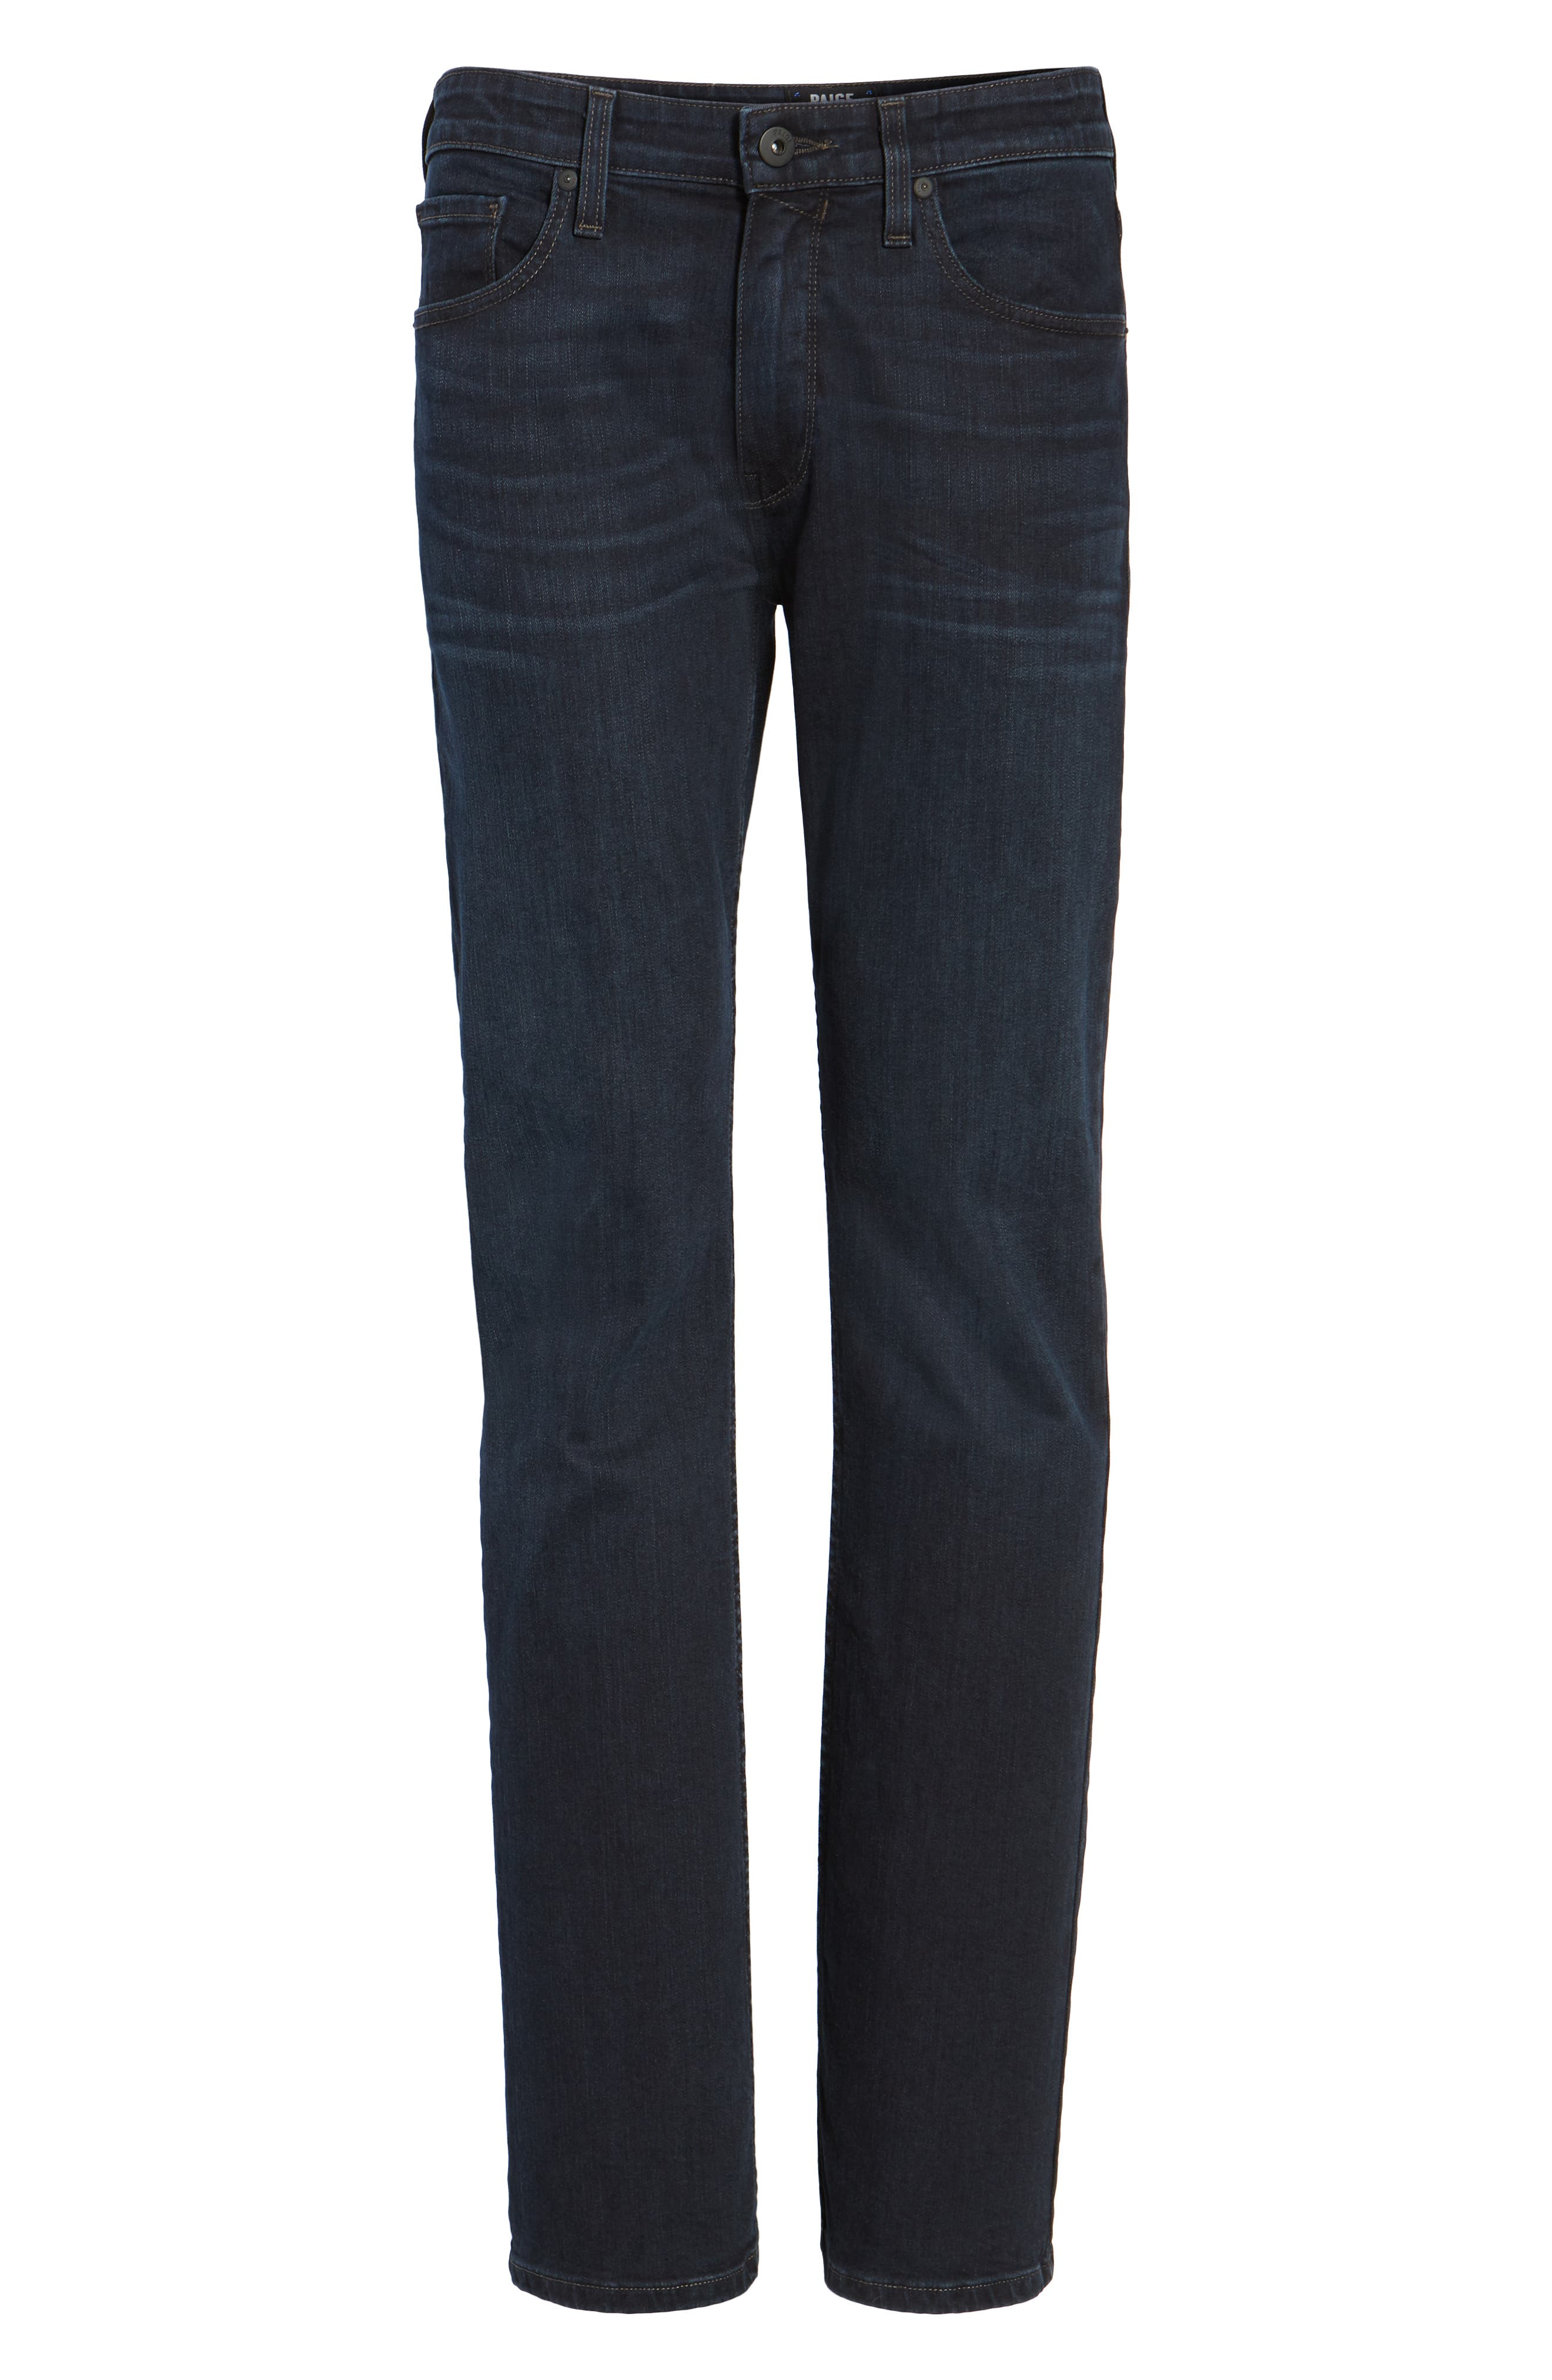 Doheny Relaxed Straight Leg Jeans,                             Alternate thumbnail 6, color,                             400